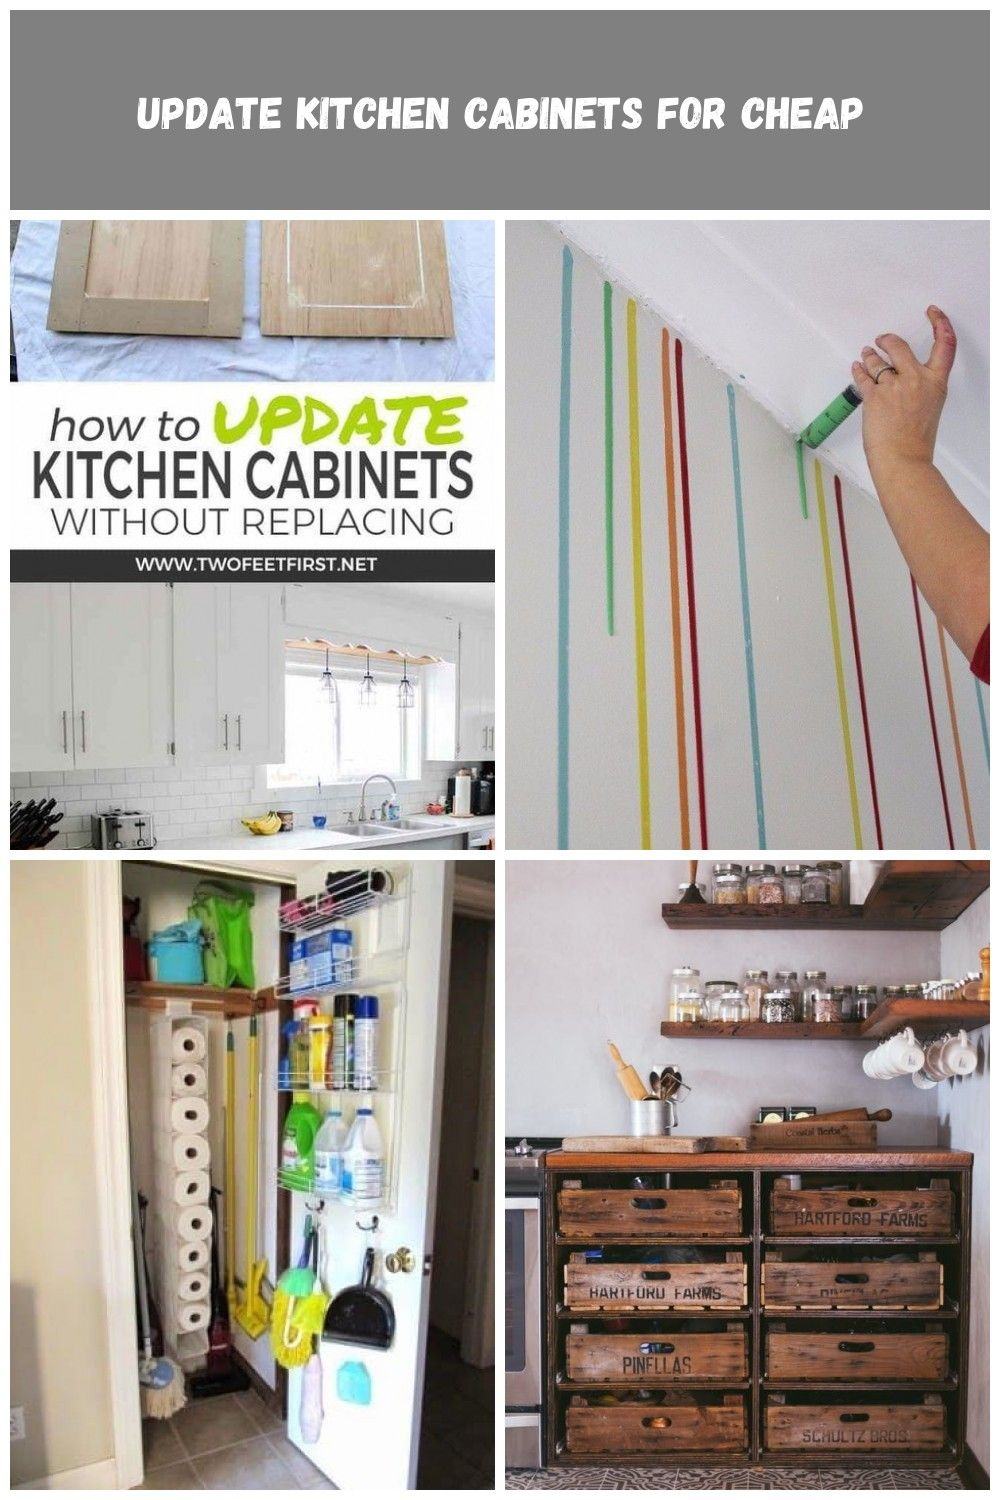 Want To Update Kitchen Cabinet Without Replacing Them Learn How To Update Kitchen Cabinets For Cheap By Ad Update Kitchen Cabinets Updated Kitchen Diy Kitchen